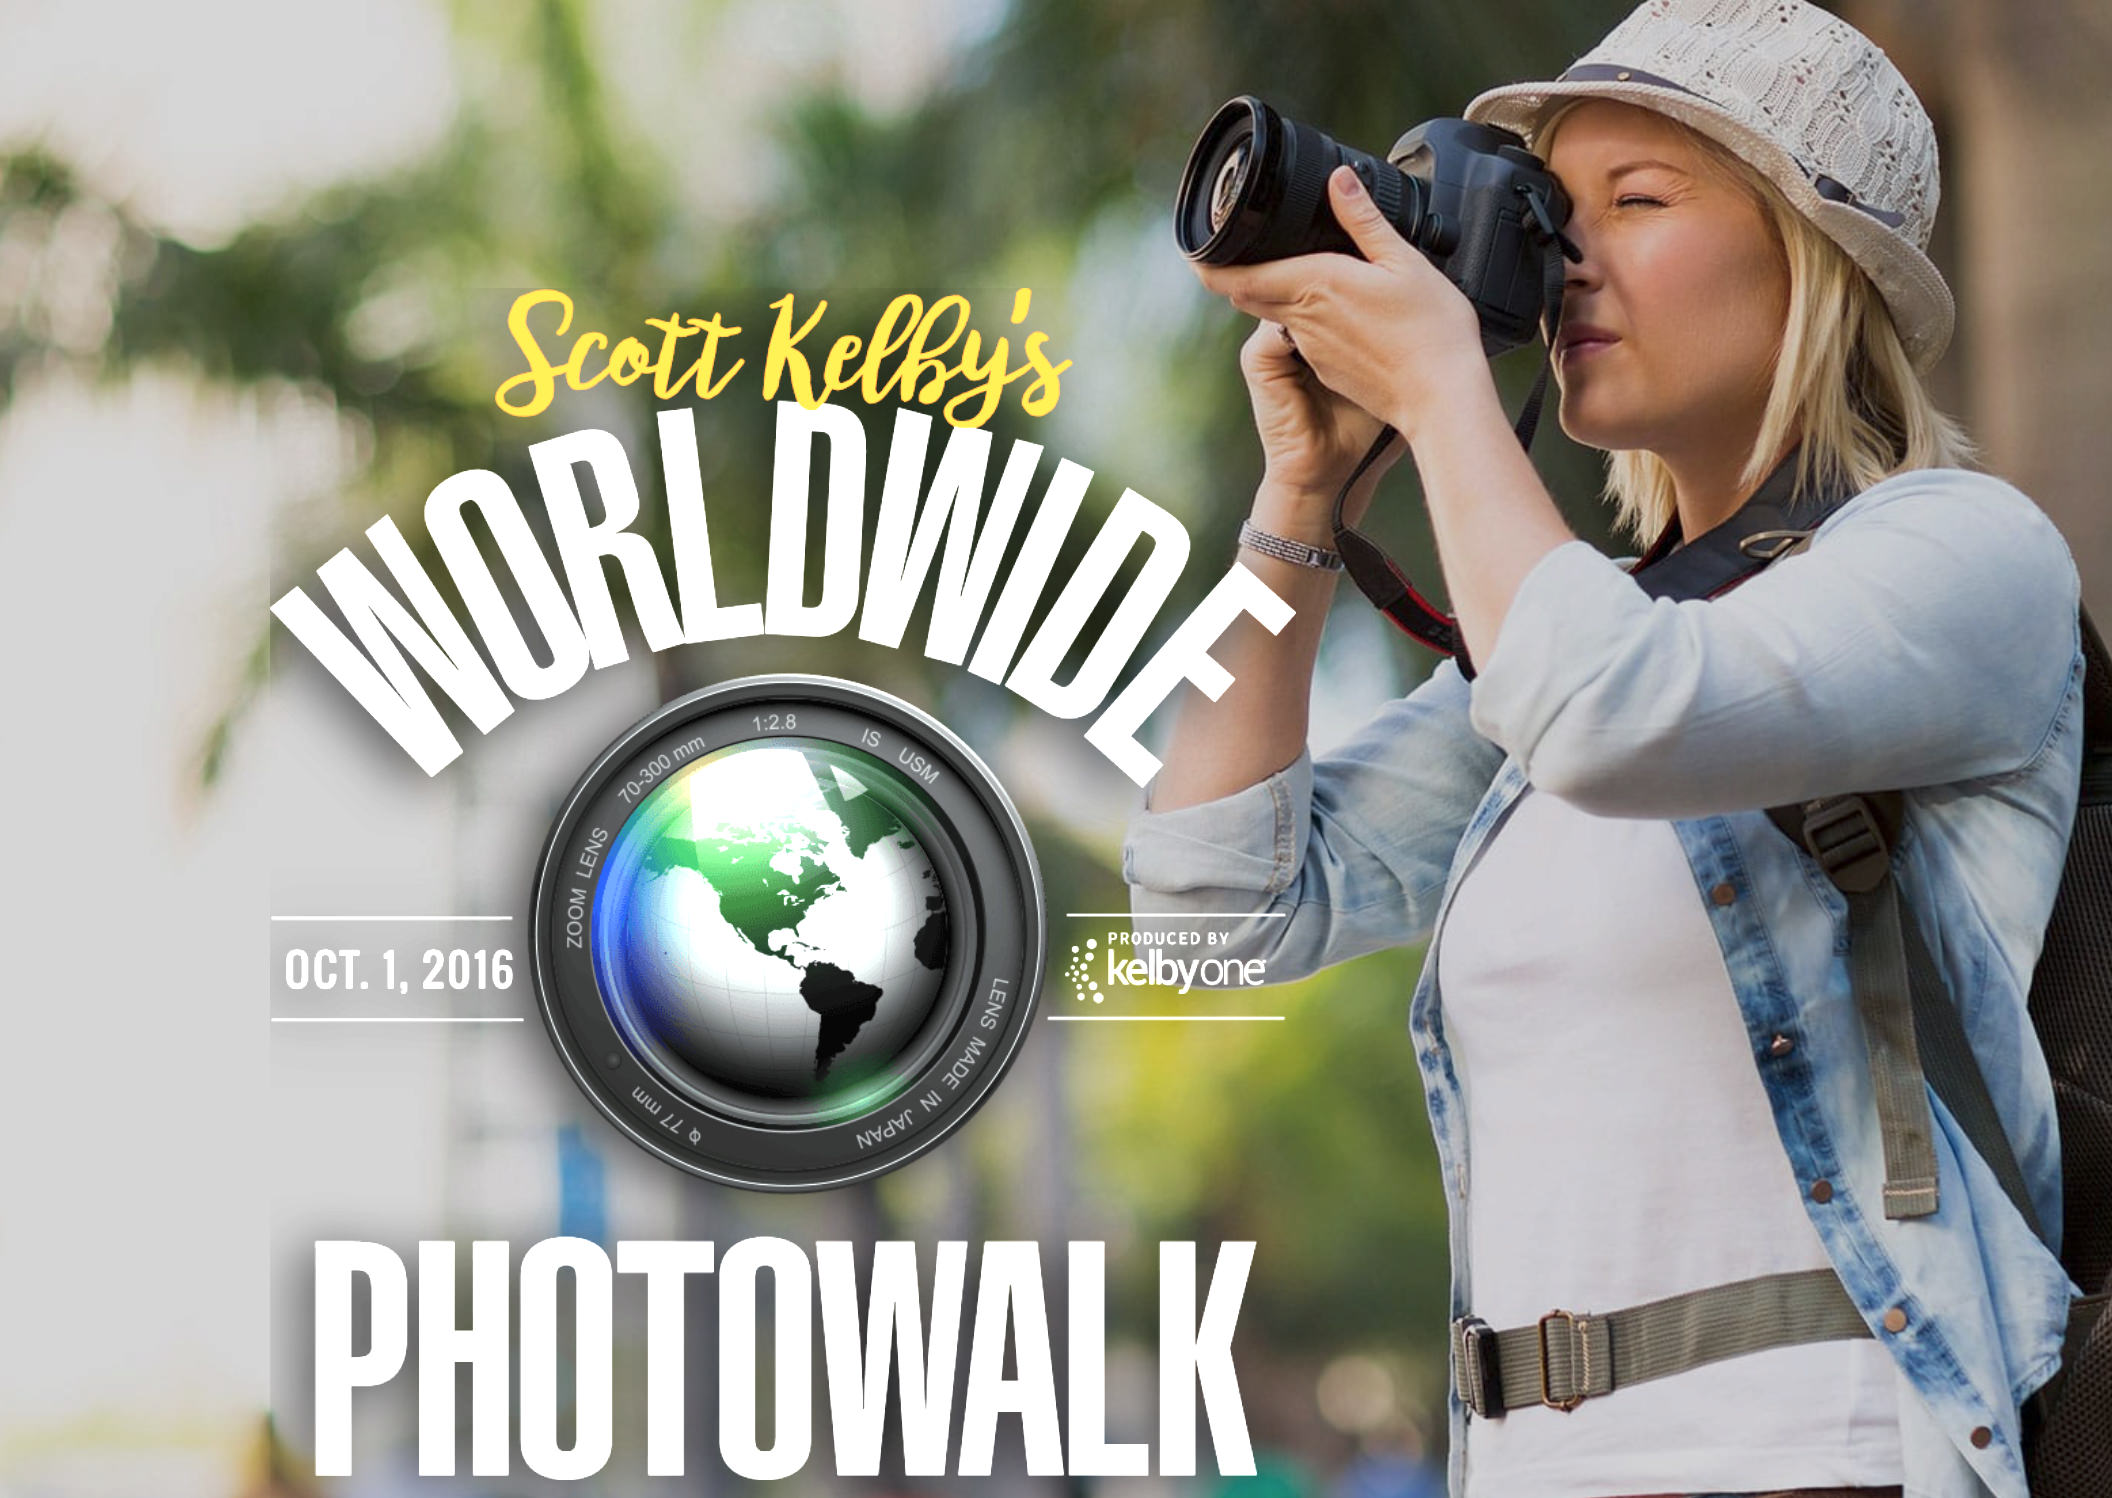 Fotografare in giro per Catania, arriva la WorldWide Photowalk